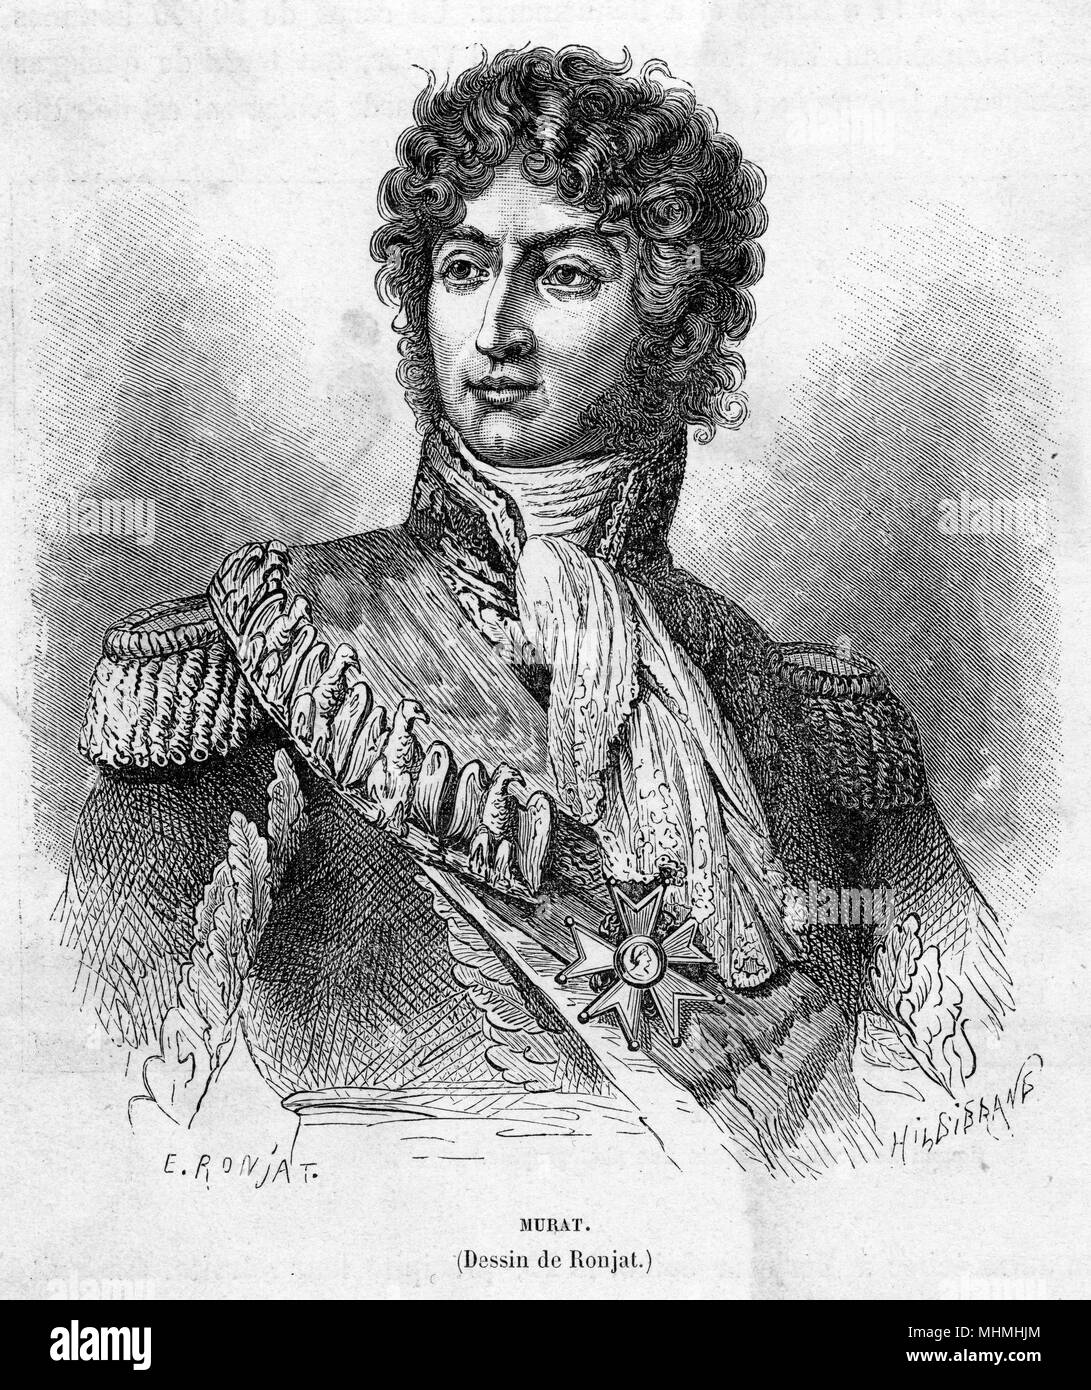 JOACHIM MURAT - as decorated soldier       Date: 1767 - 1815 - Stock Image